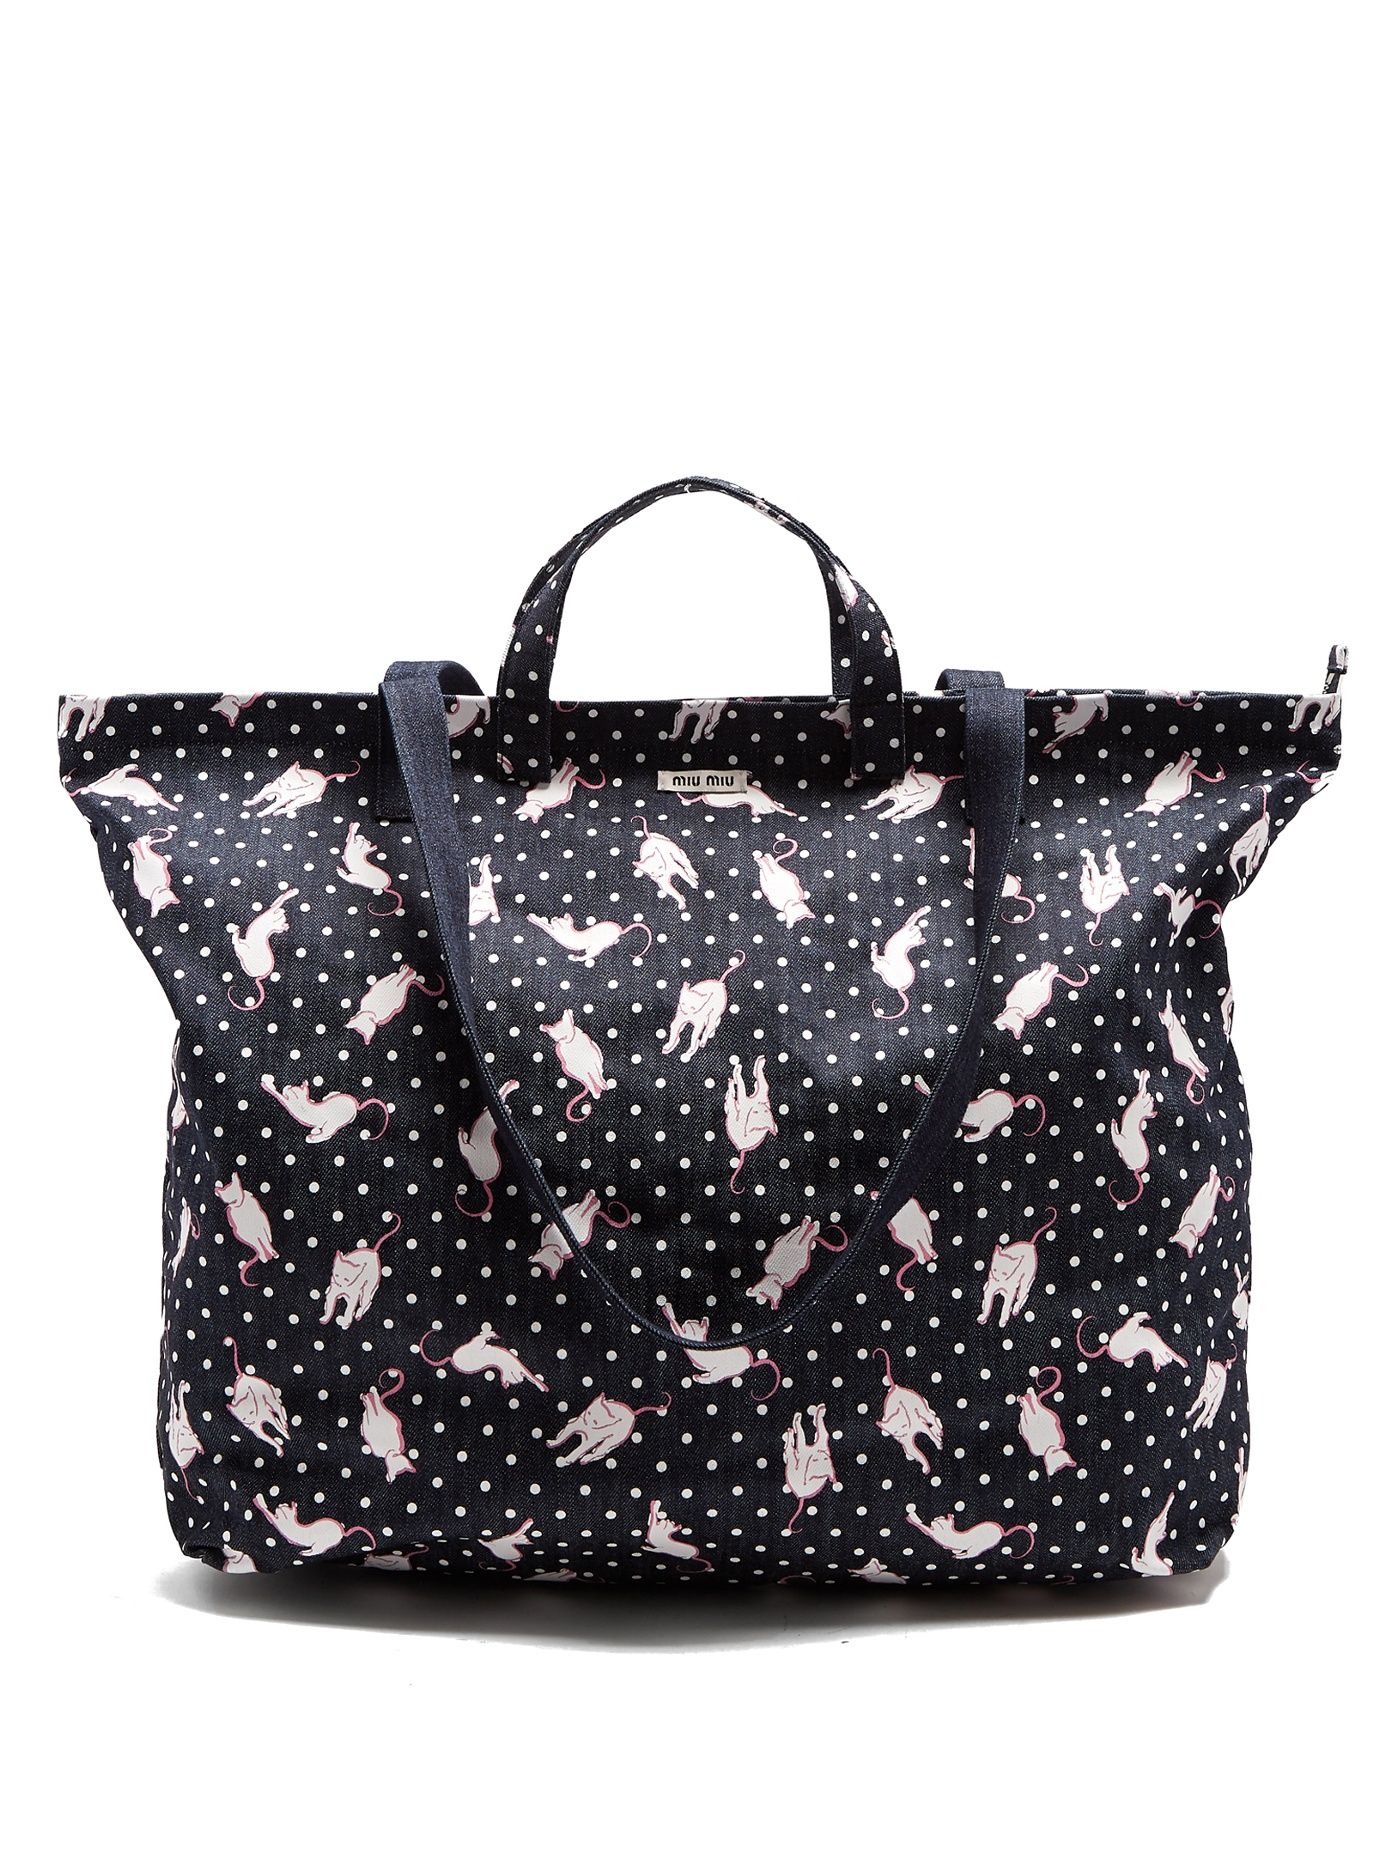 cc516da7a385 Cat-print denim tote bag